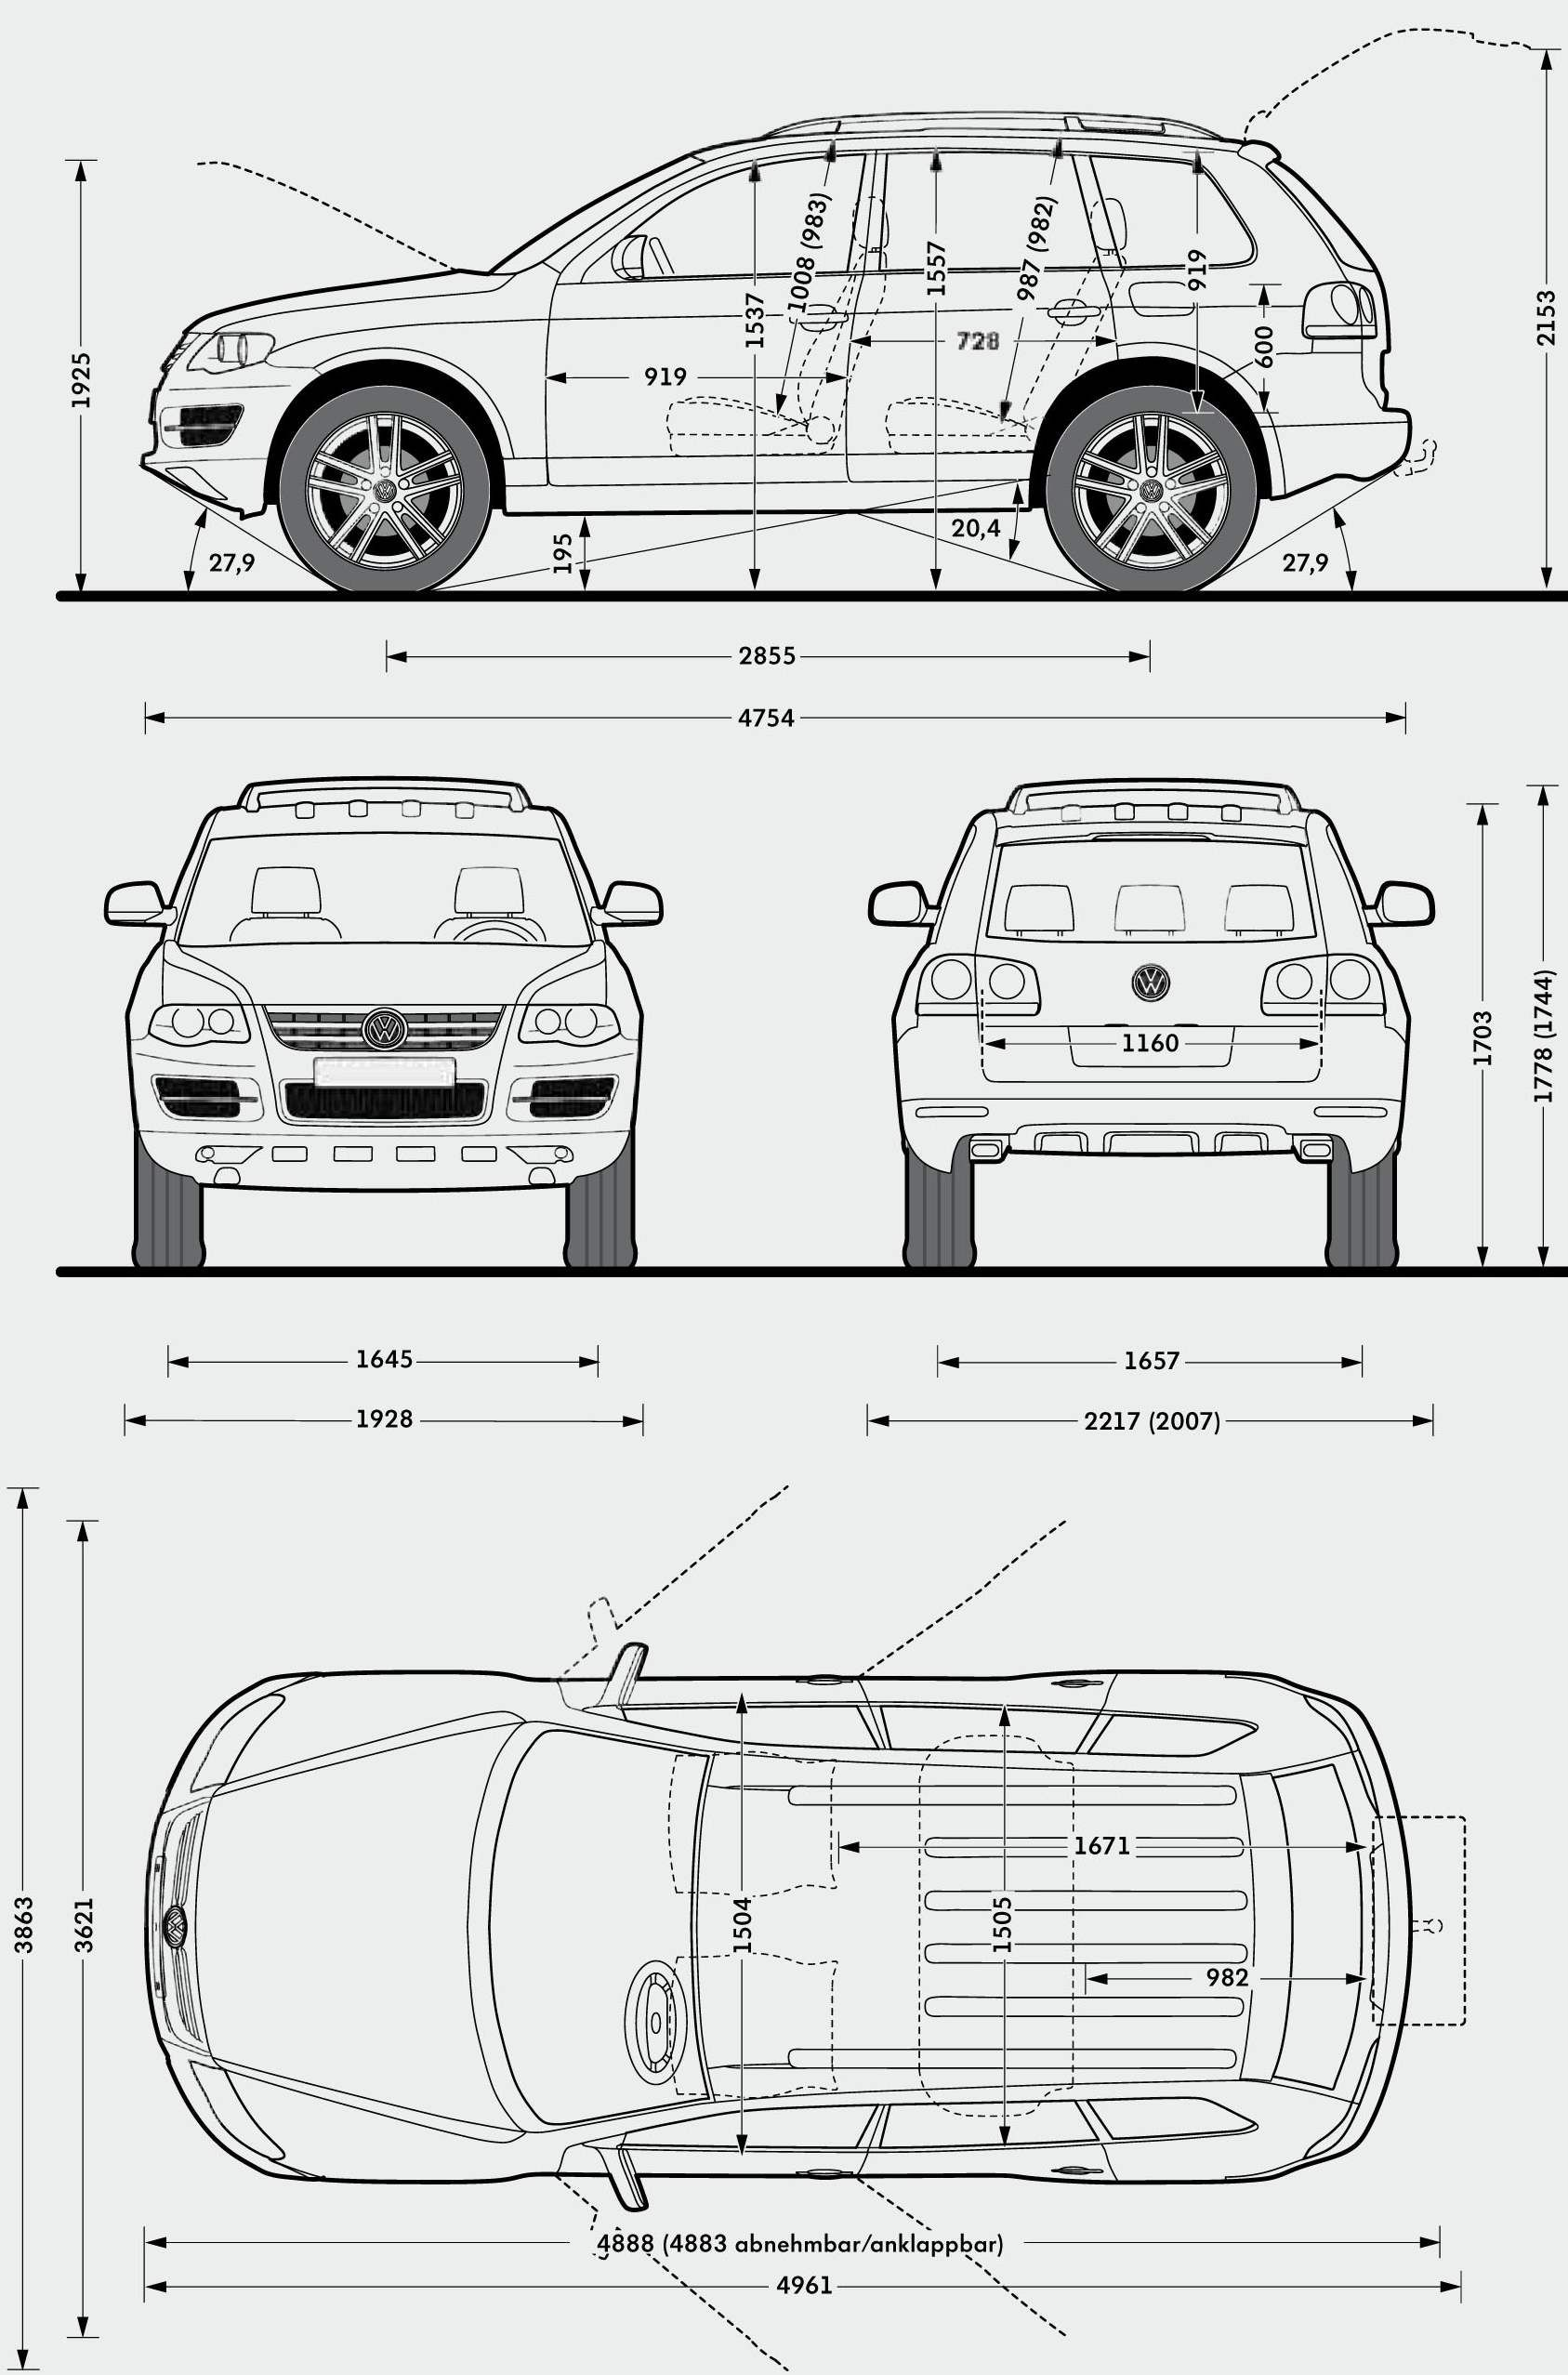 Volkswagen Touareg Blueprint With Images